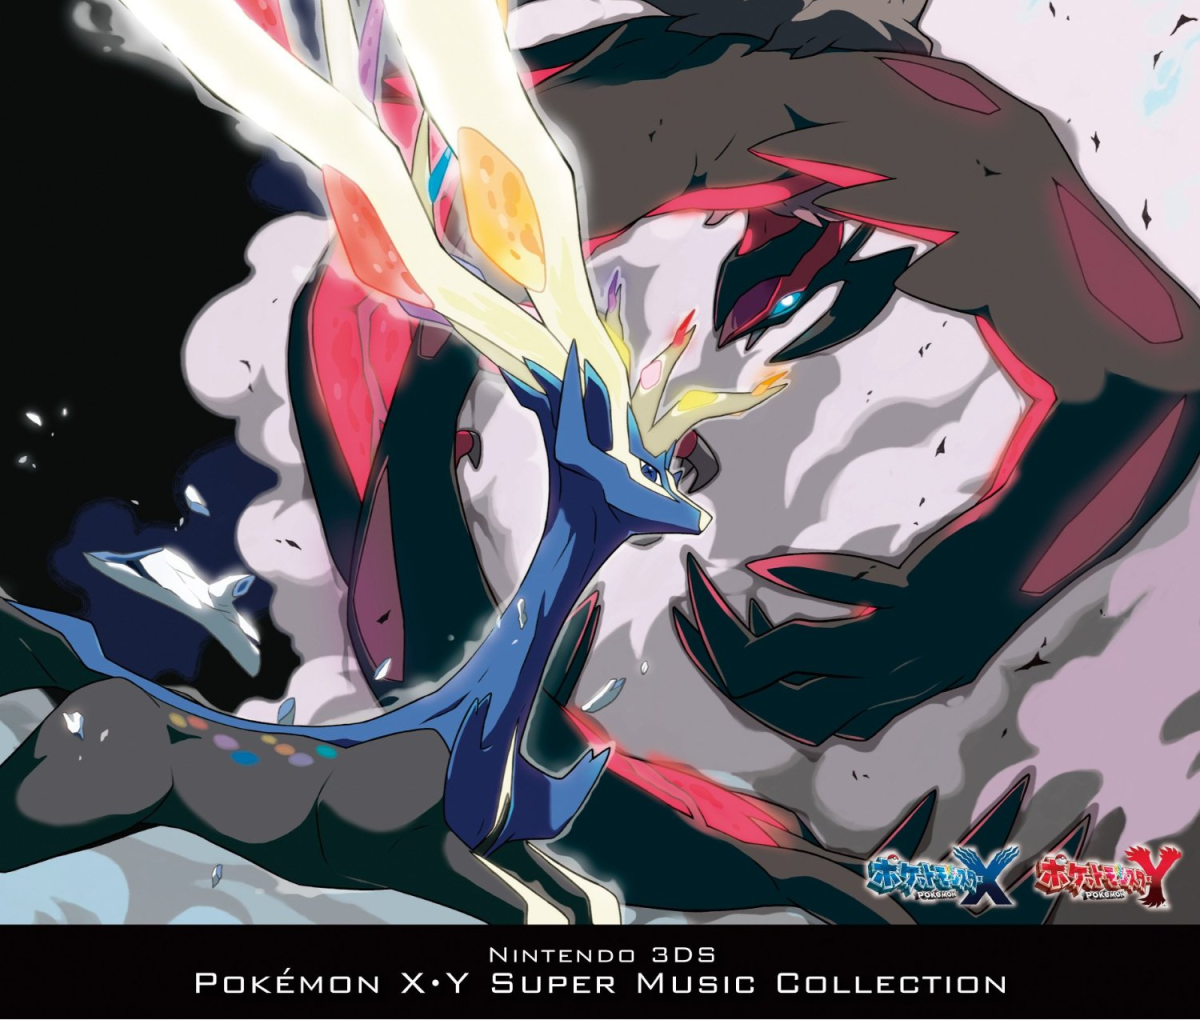 Nintendo 3DS Pokémon X・Y Super Music Collection